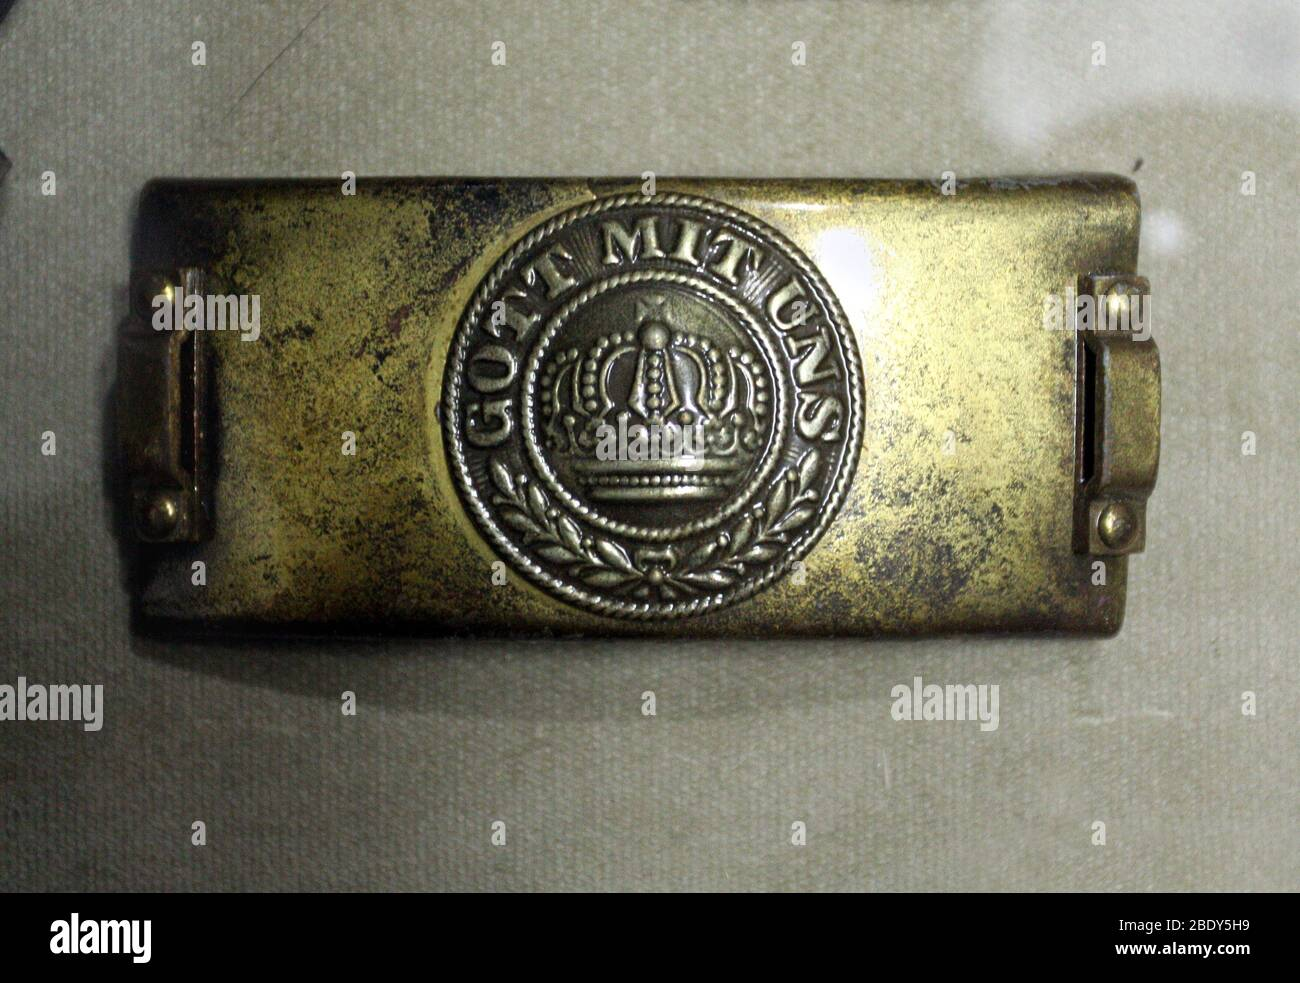 Cracow Krakow Poland Brass Ww I German Empire Belt Buckle With Round Silver Relief Featuring A Crown And The Inscription Gott Mit Uns Stock Photo Alamy